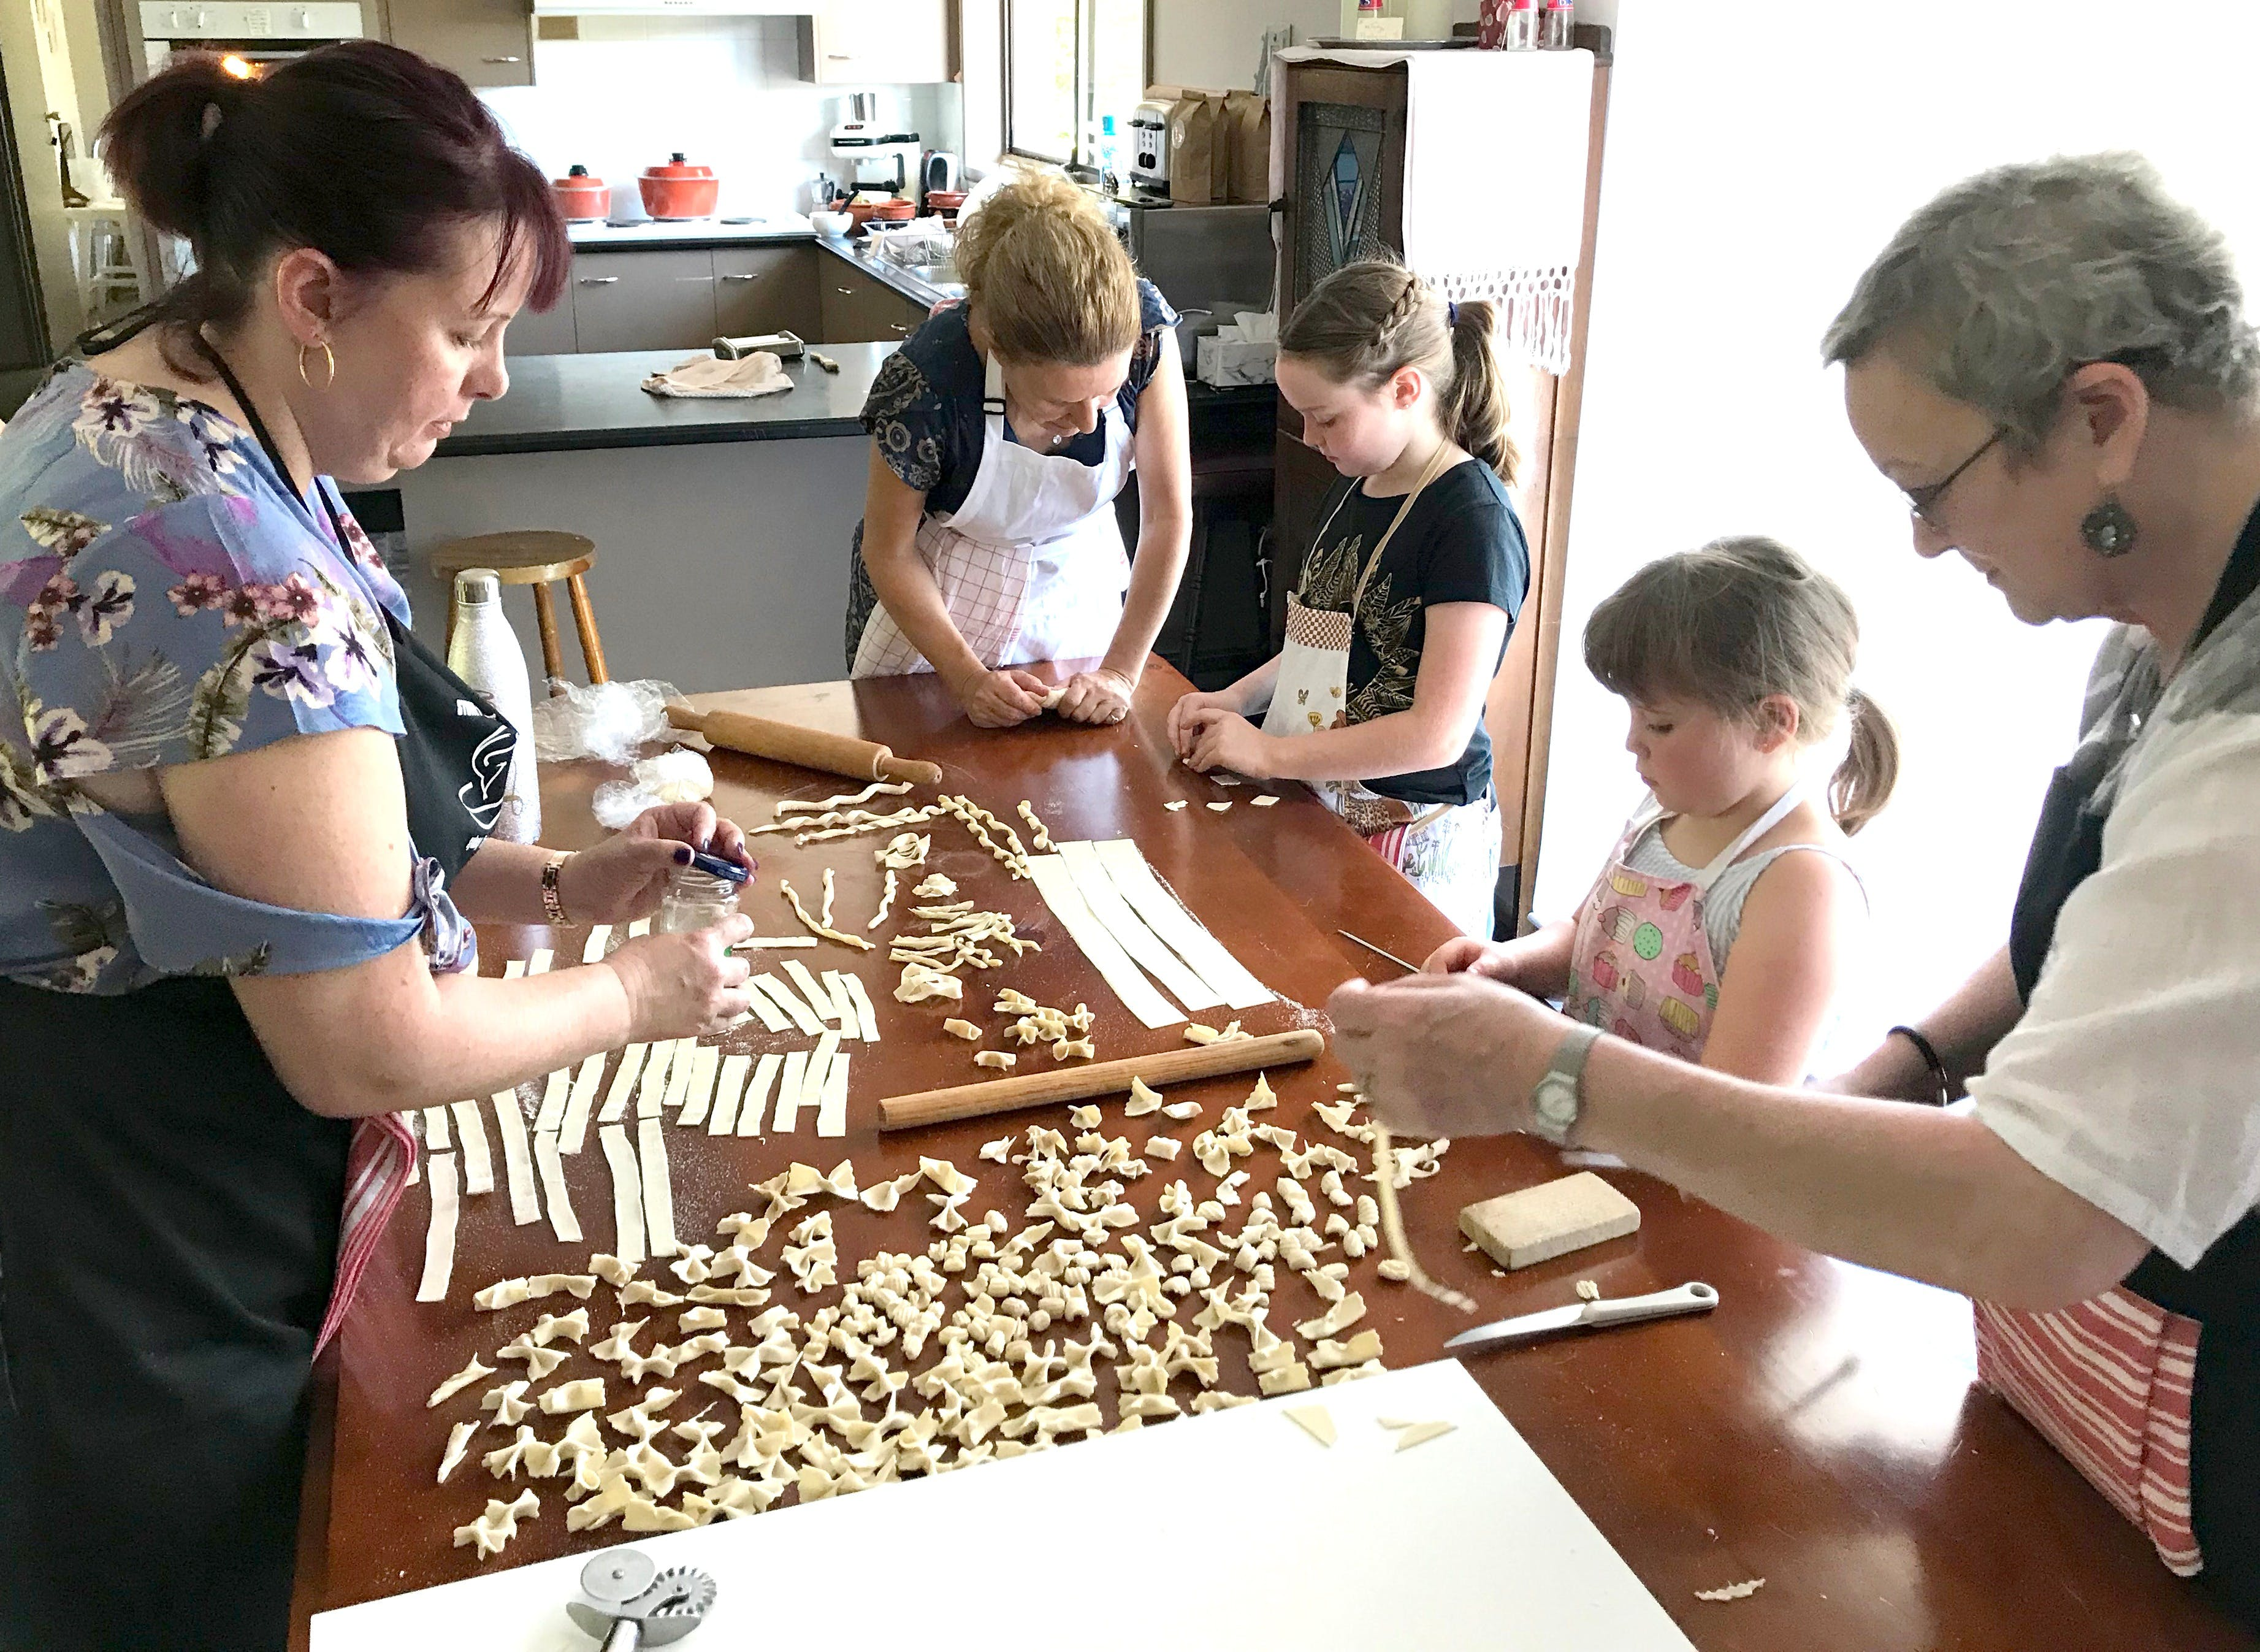 Kids Pasta Making Class - hands on fun at your house - Accommodation in Surfers Paradise